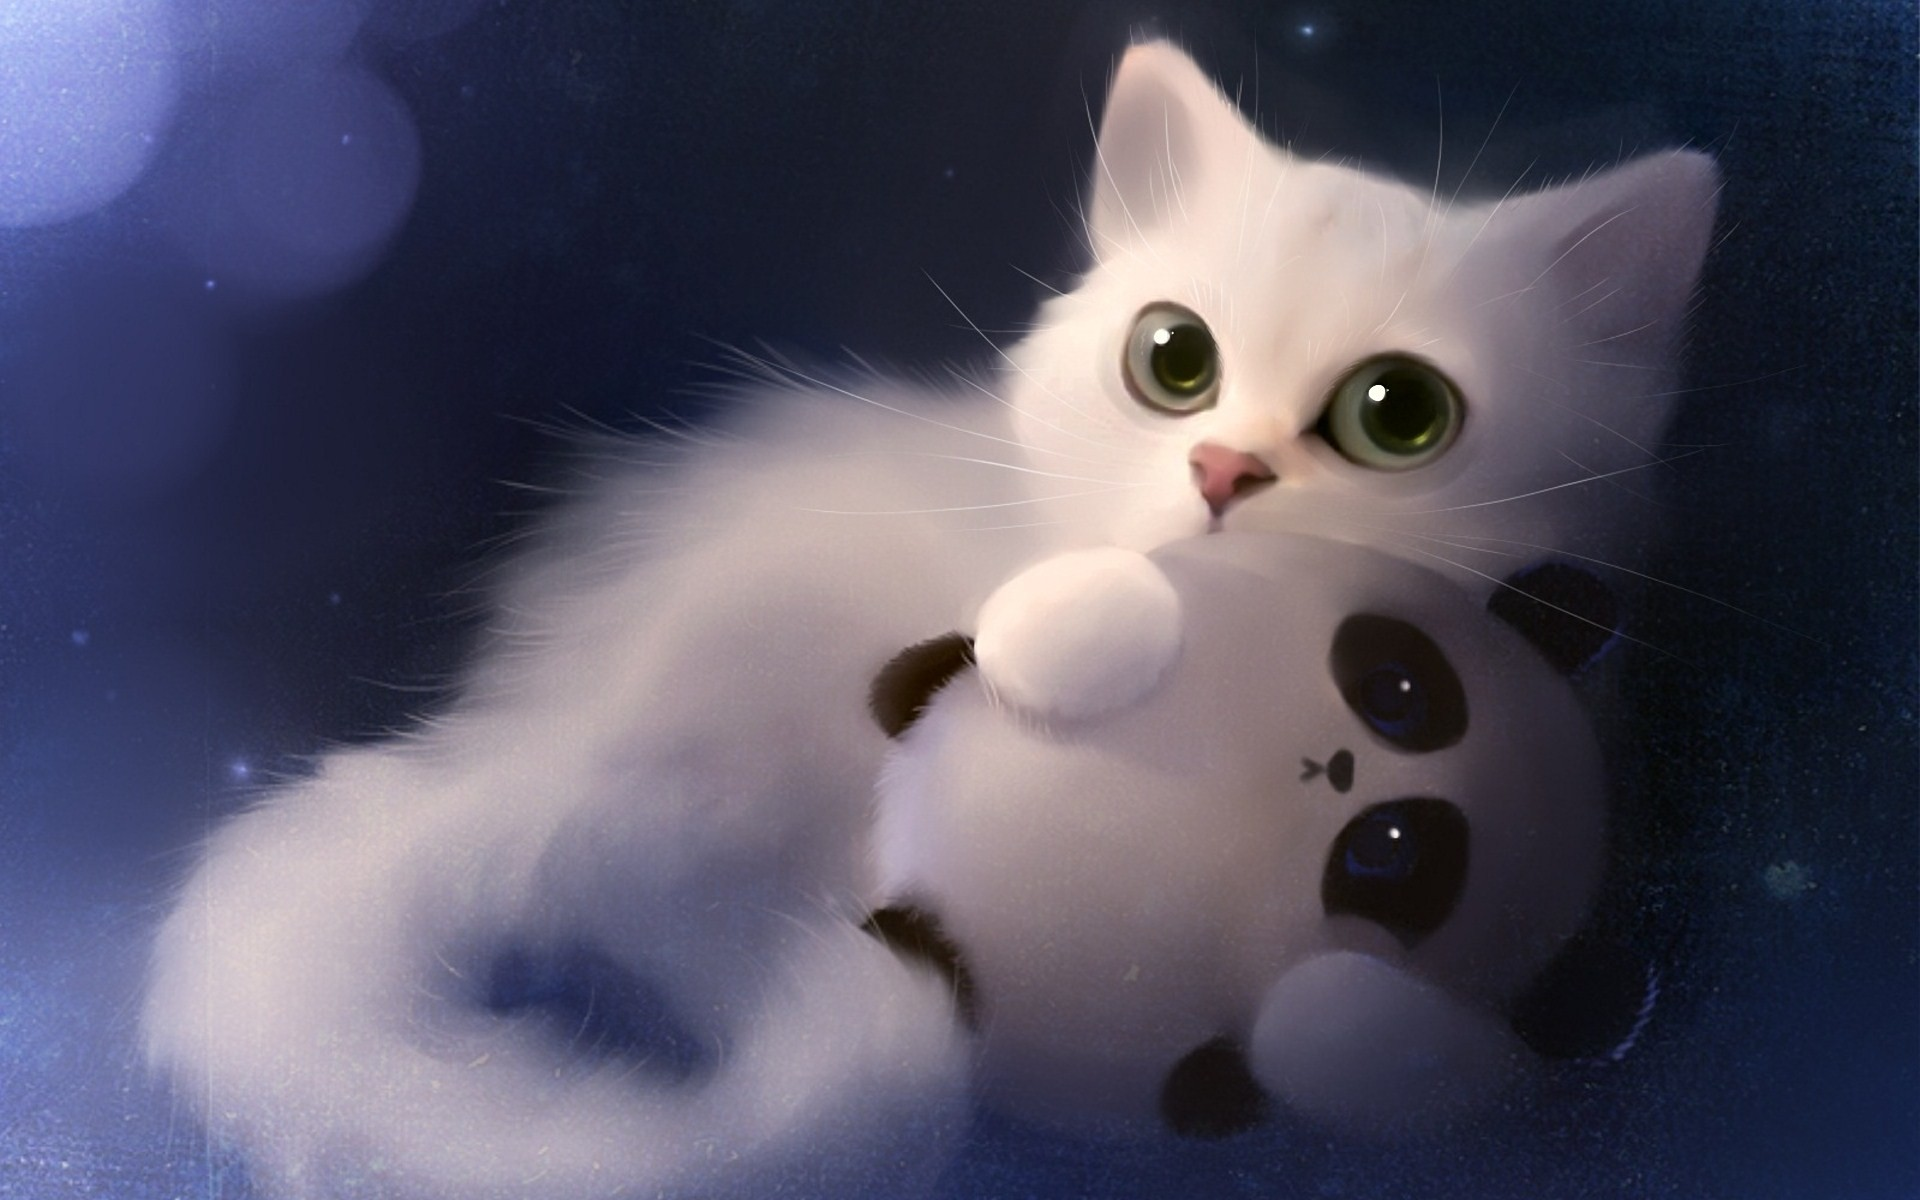 wallpaper.wiki-Cute-HD-Background-Wallpapers-1-PIC- 1920x1200